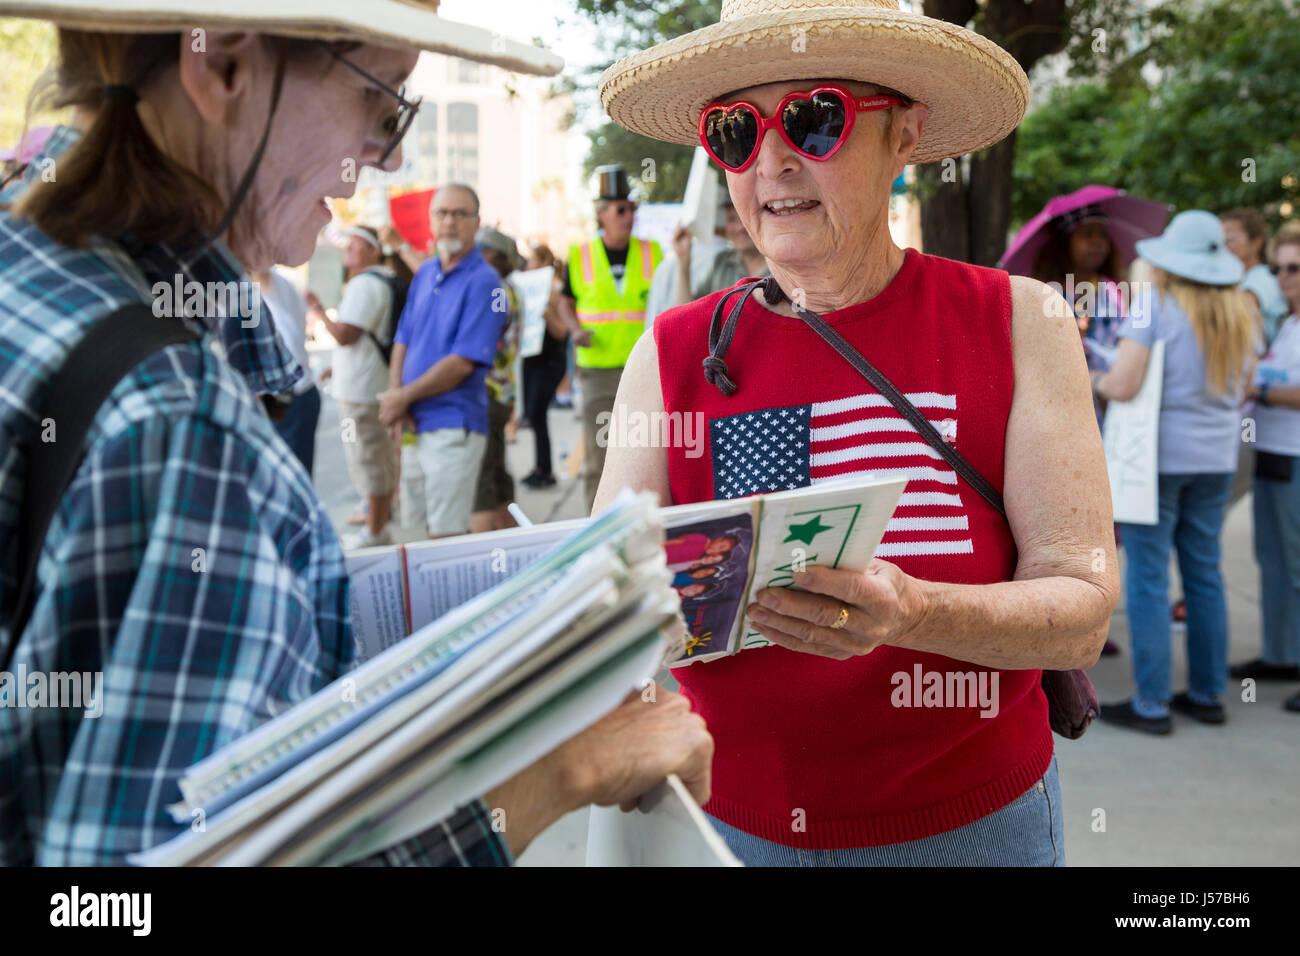 Tucson, Arizona - A woman circulates a petition supporting pre-school programs for kids. - Stock Image